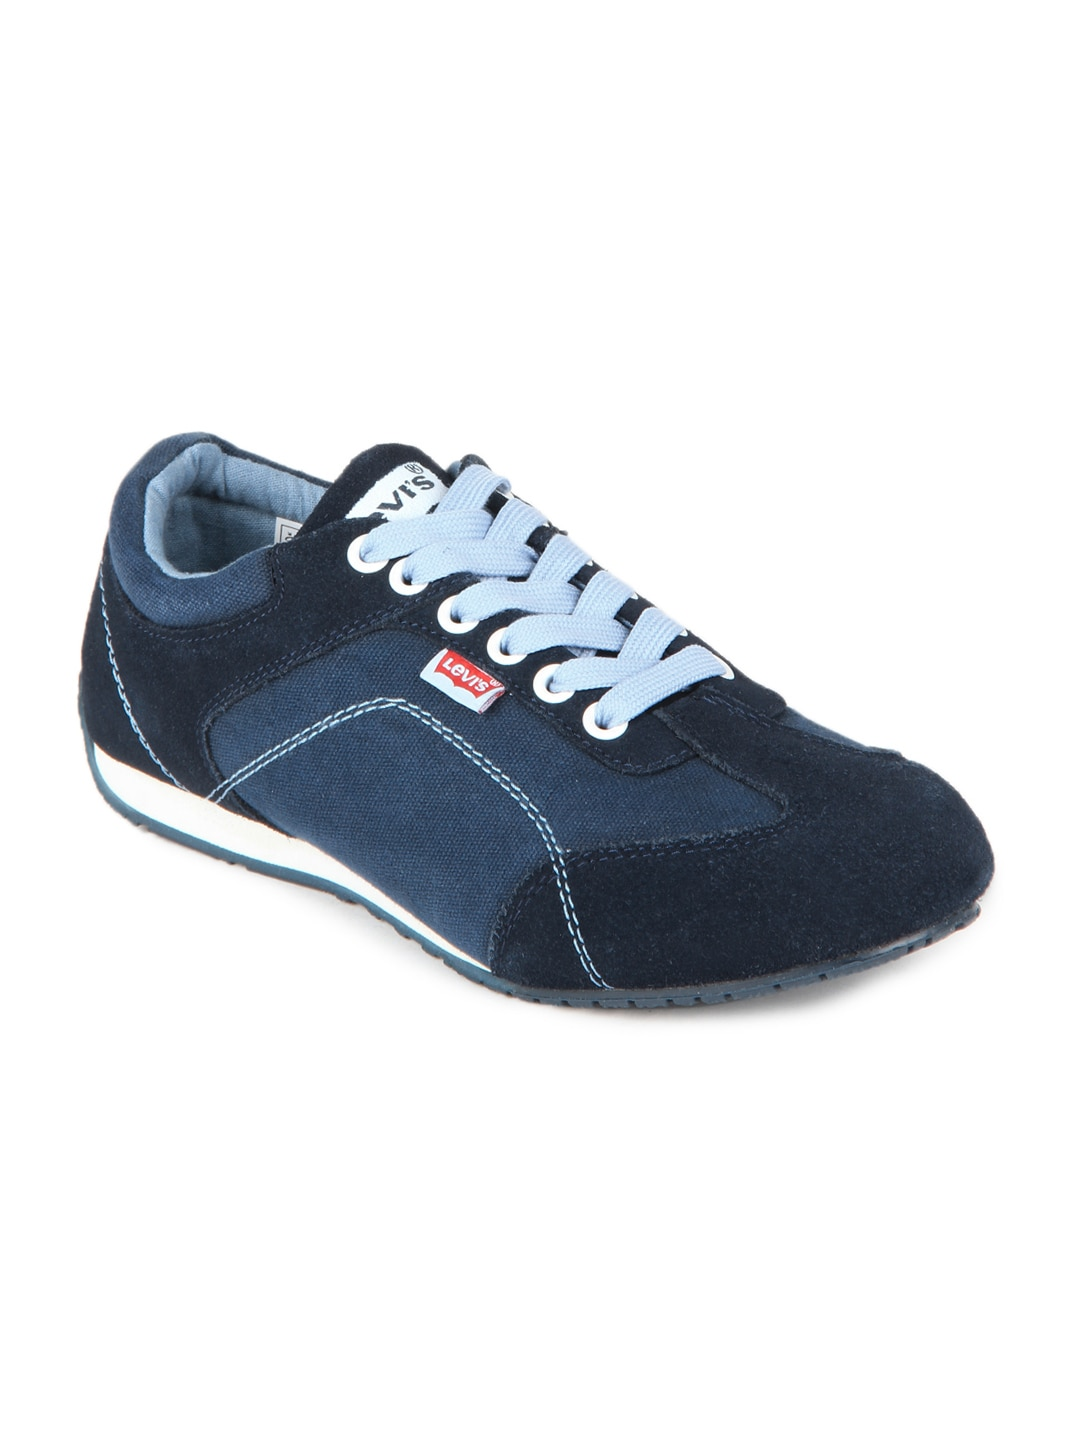 buy levis blue casual shoes 632 footwear for